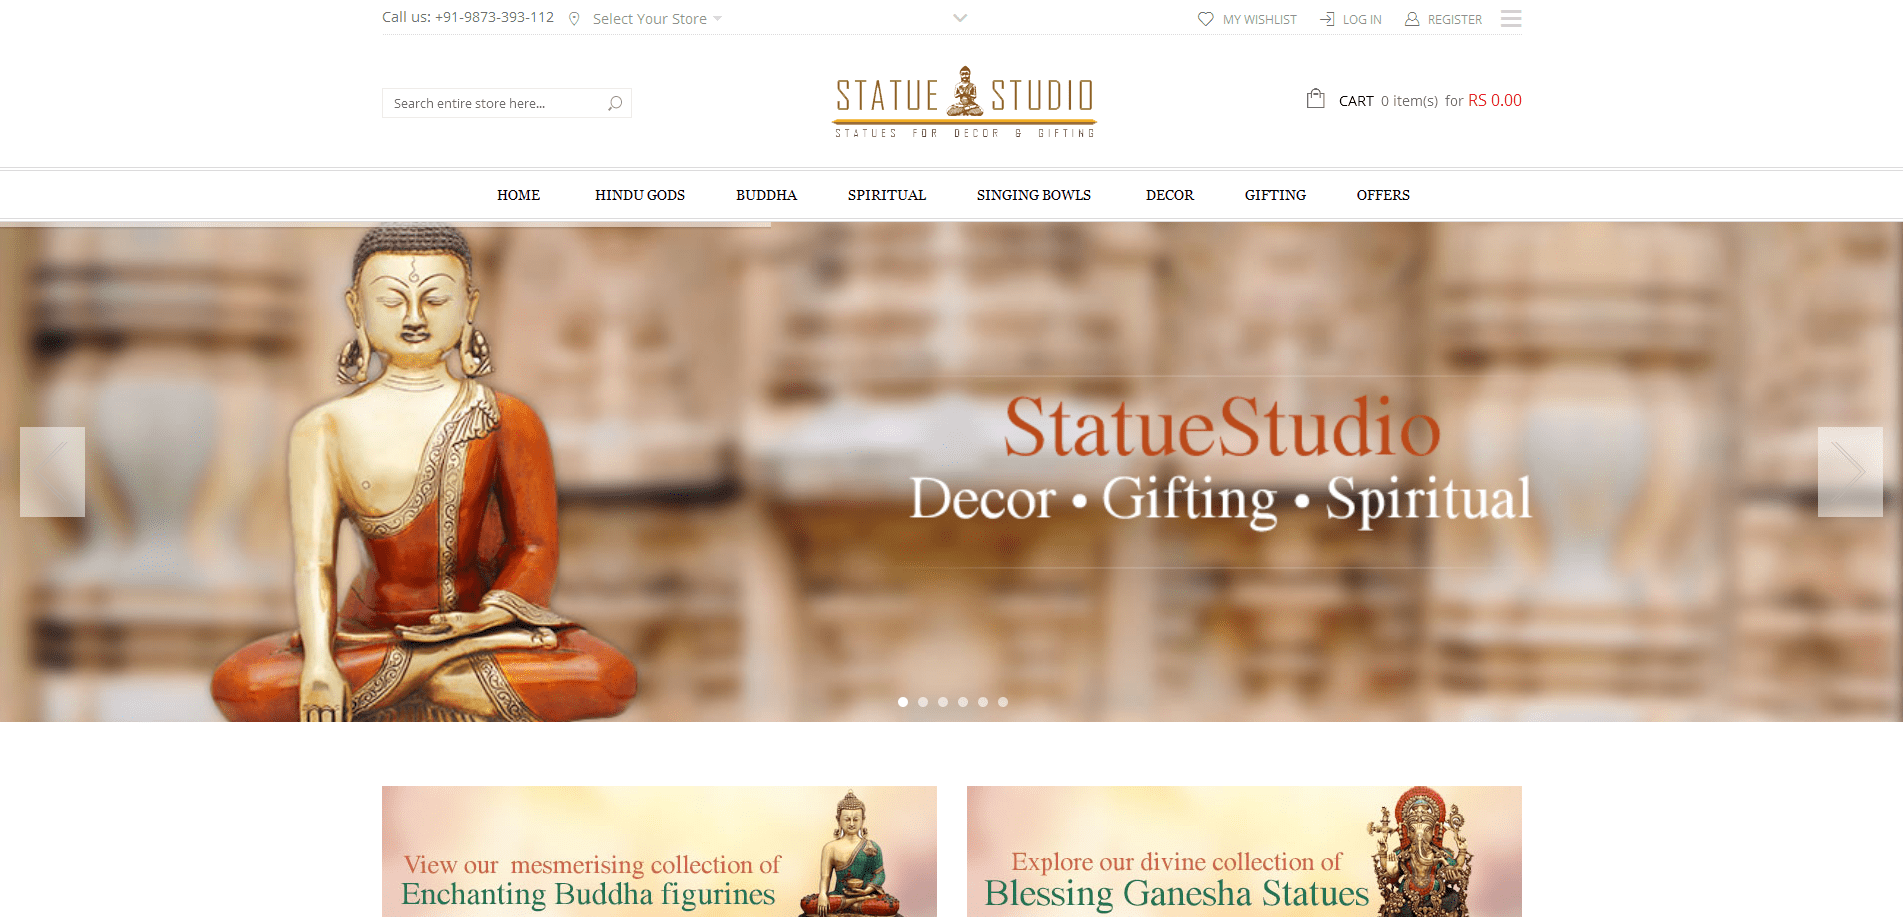 statuestudio featured